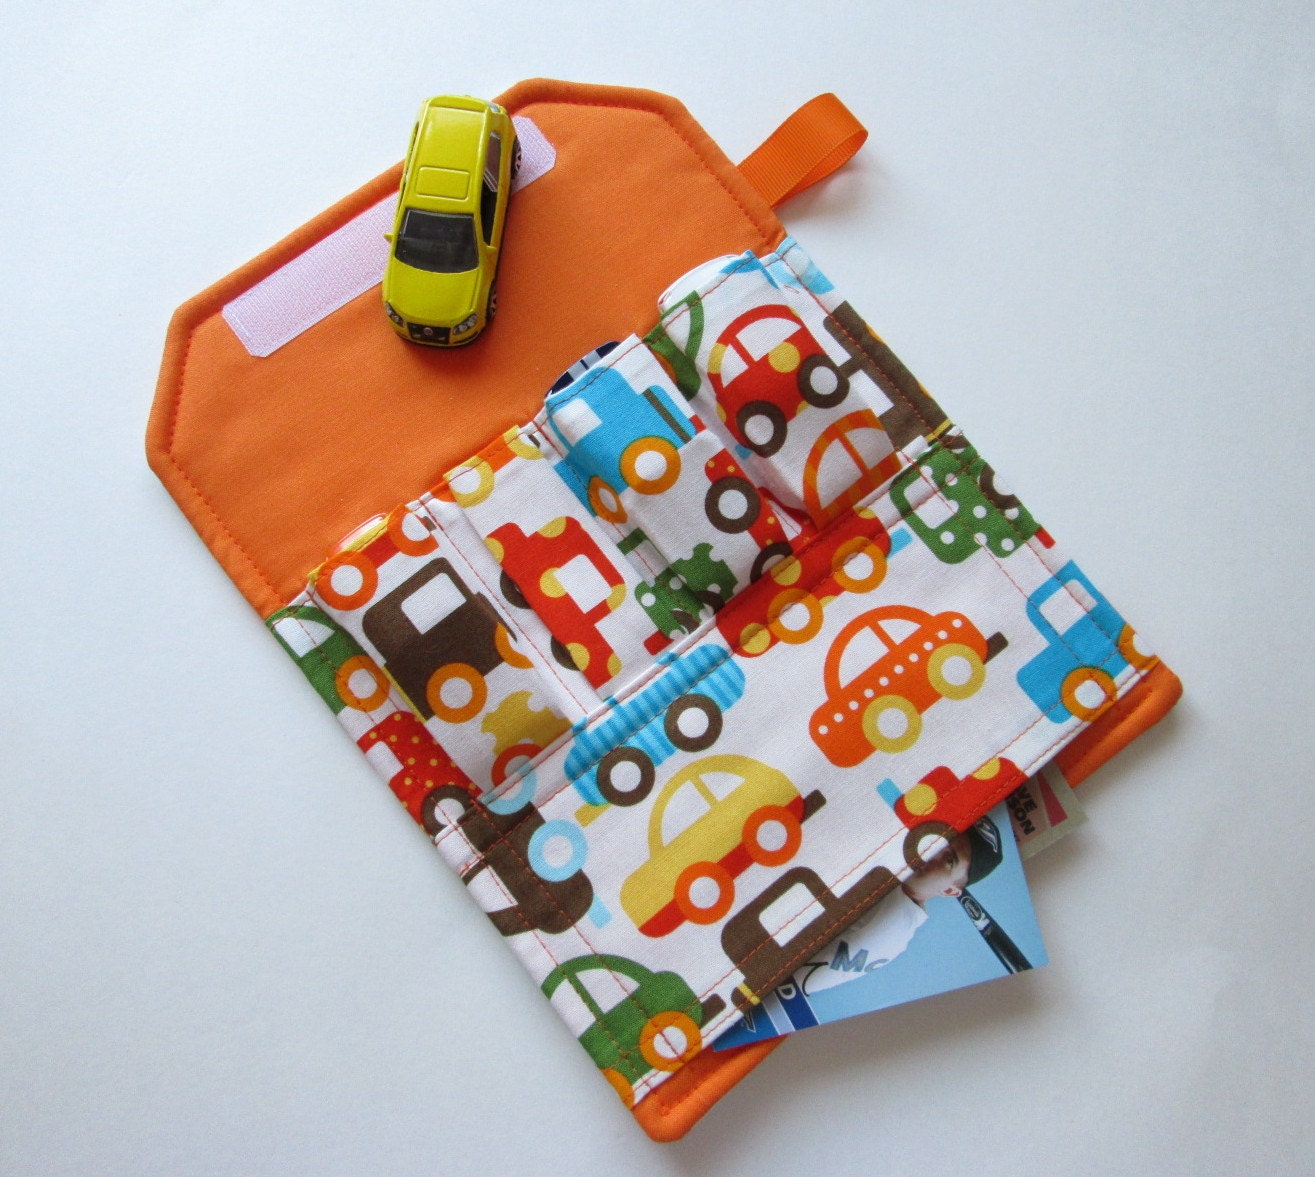 Toy Car Holder Tutorial : Childs toy car holder the original wallet by